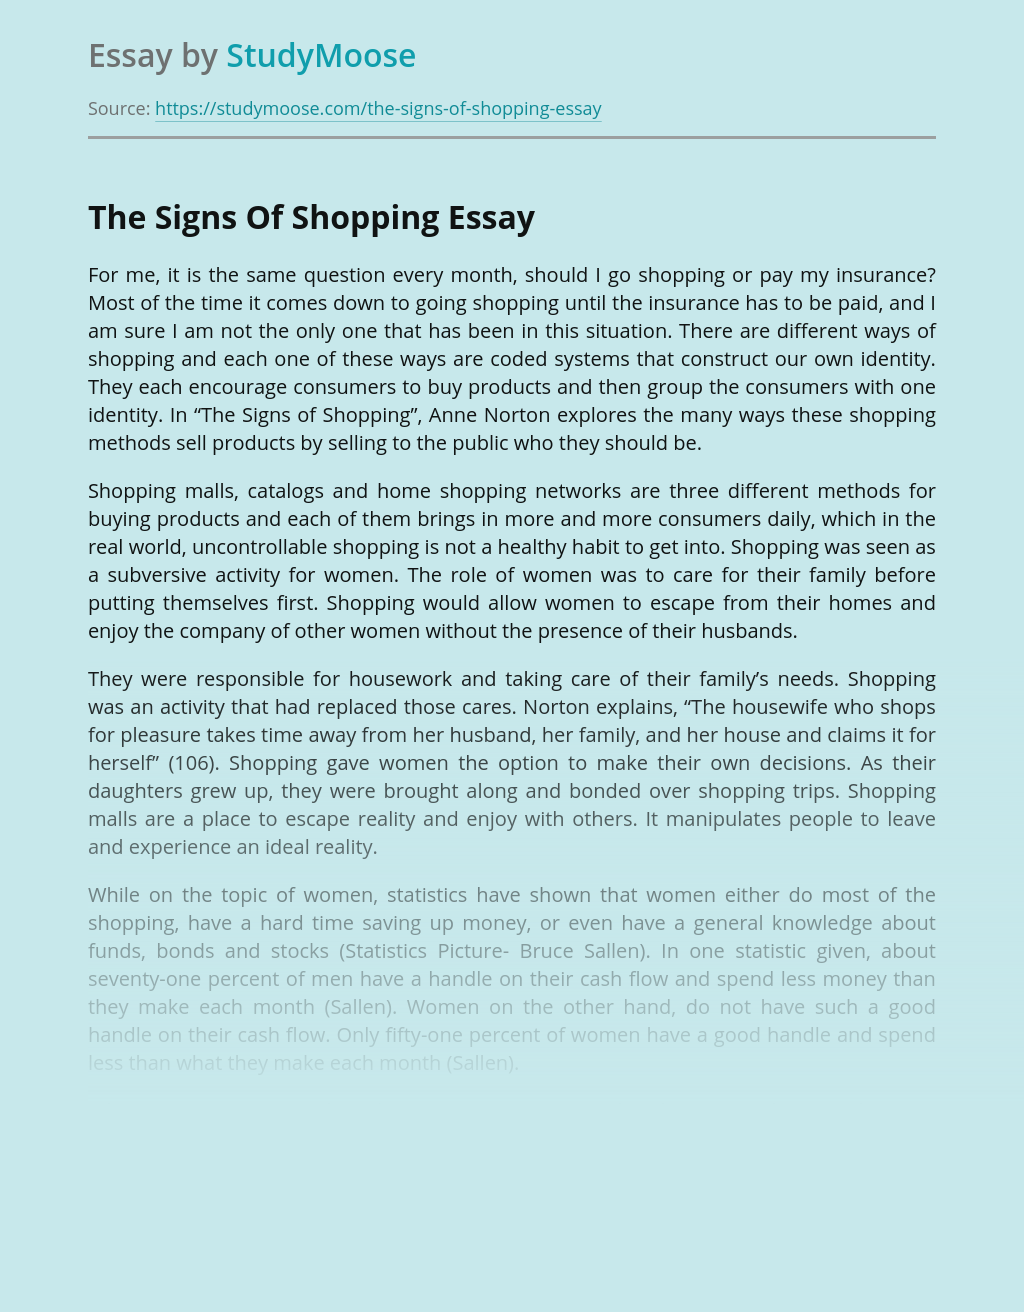 The Signs Of Shopping